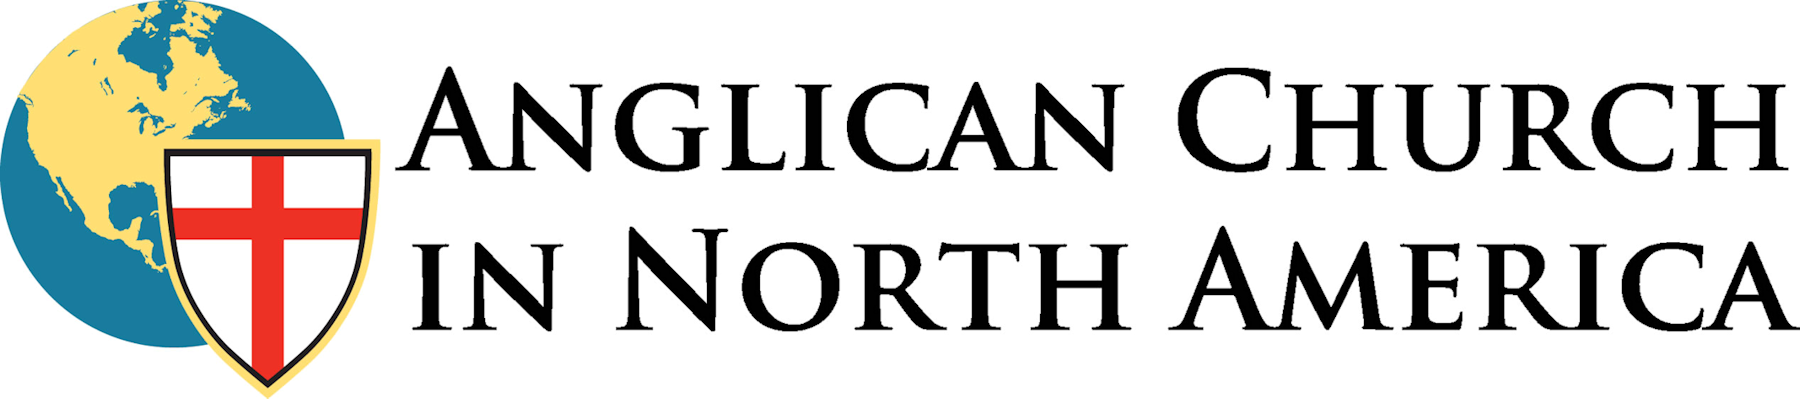 Anglican-church-logo_Black Text3